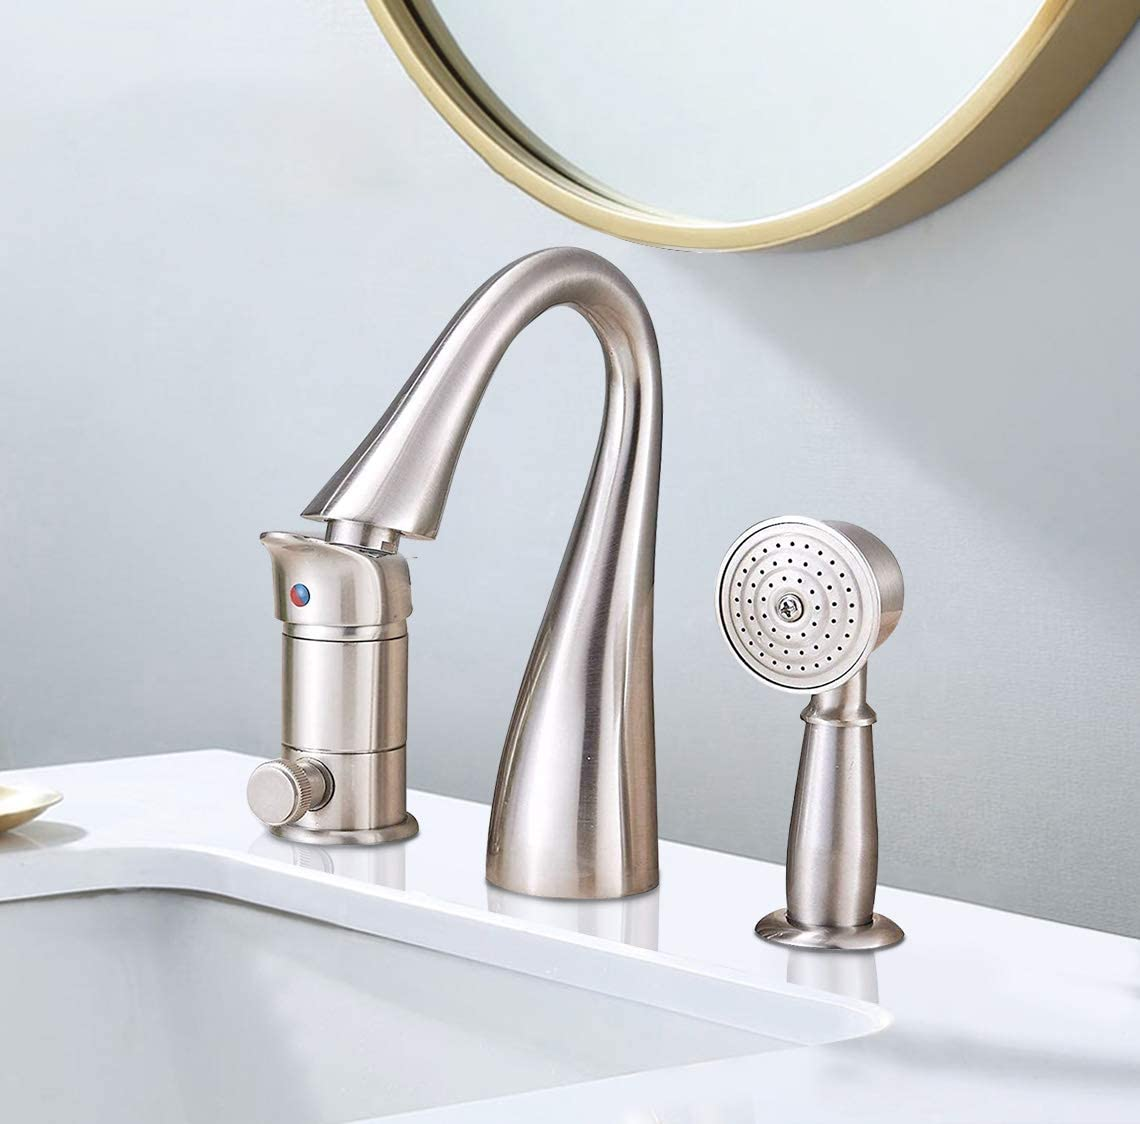 Saeuwtowy Brass Bathtub Faucet/Tap Waterfall 3 Holes Shower and Bathtub Faucet Brushed Nickel Bathtub Faucet Set Single Knobs with Handheld Shower Bathtub Faucet and Shower Set